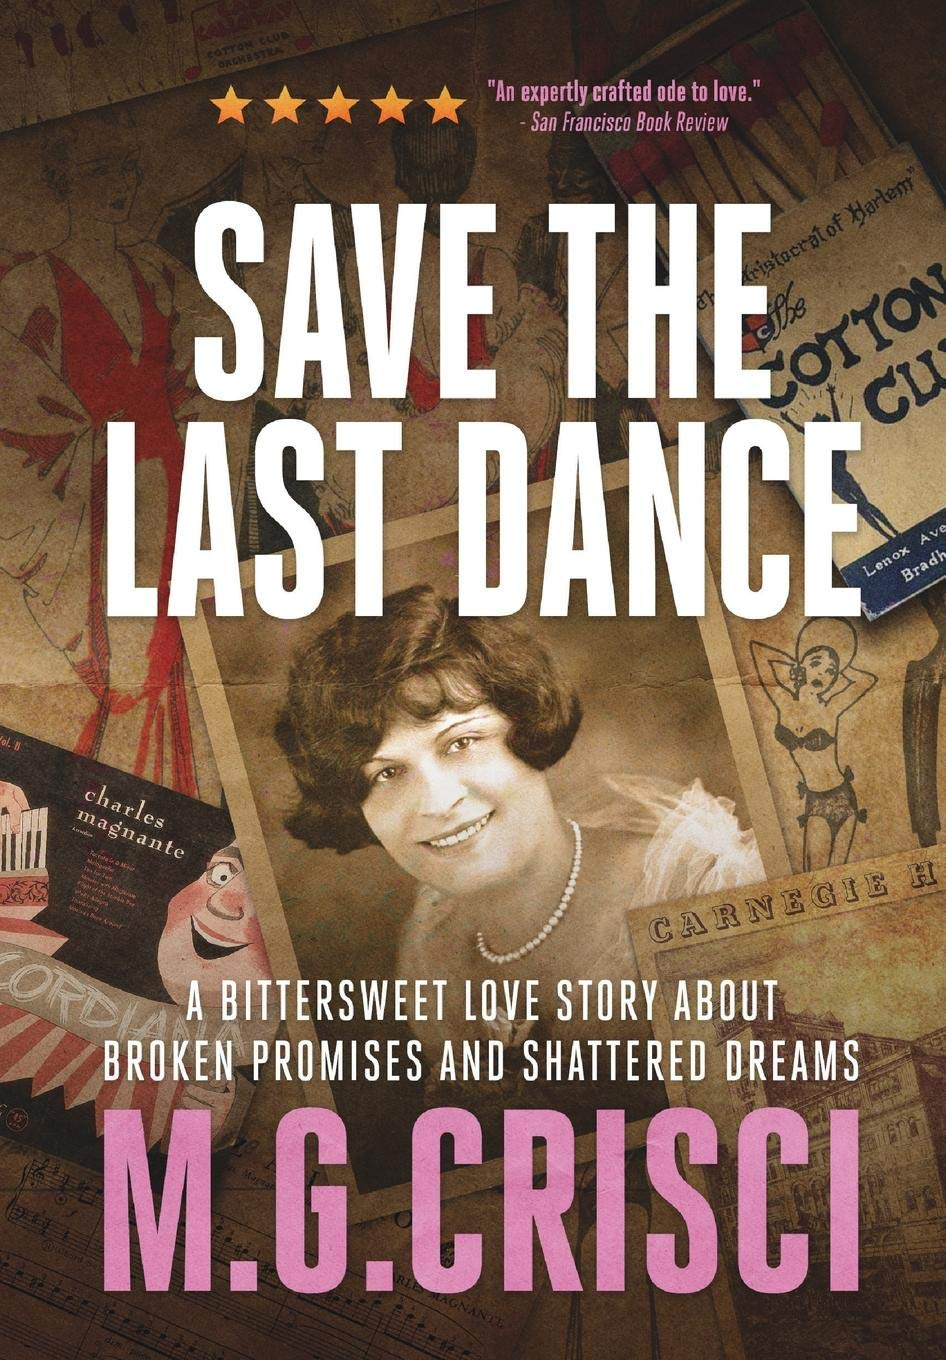 Save the Last Dance: A Bittersweet Love Story about Broken Promises and Shattered Dreams pdf